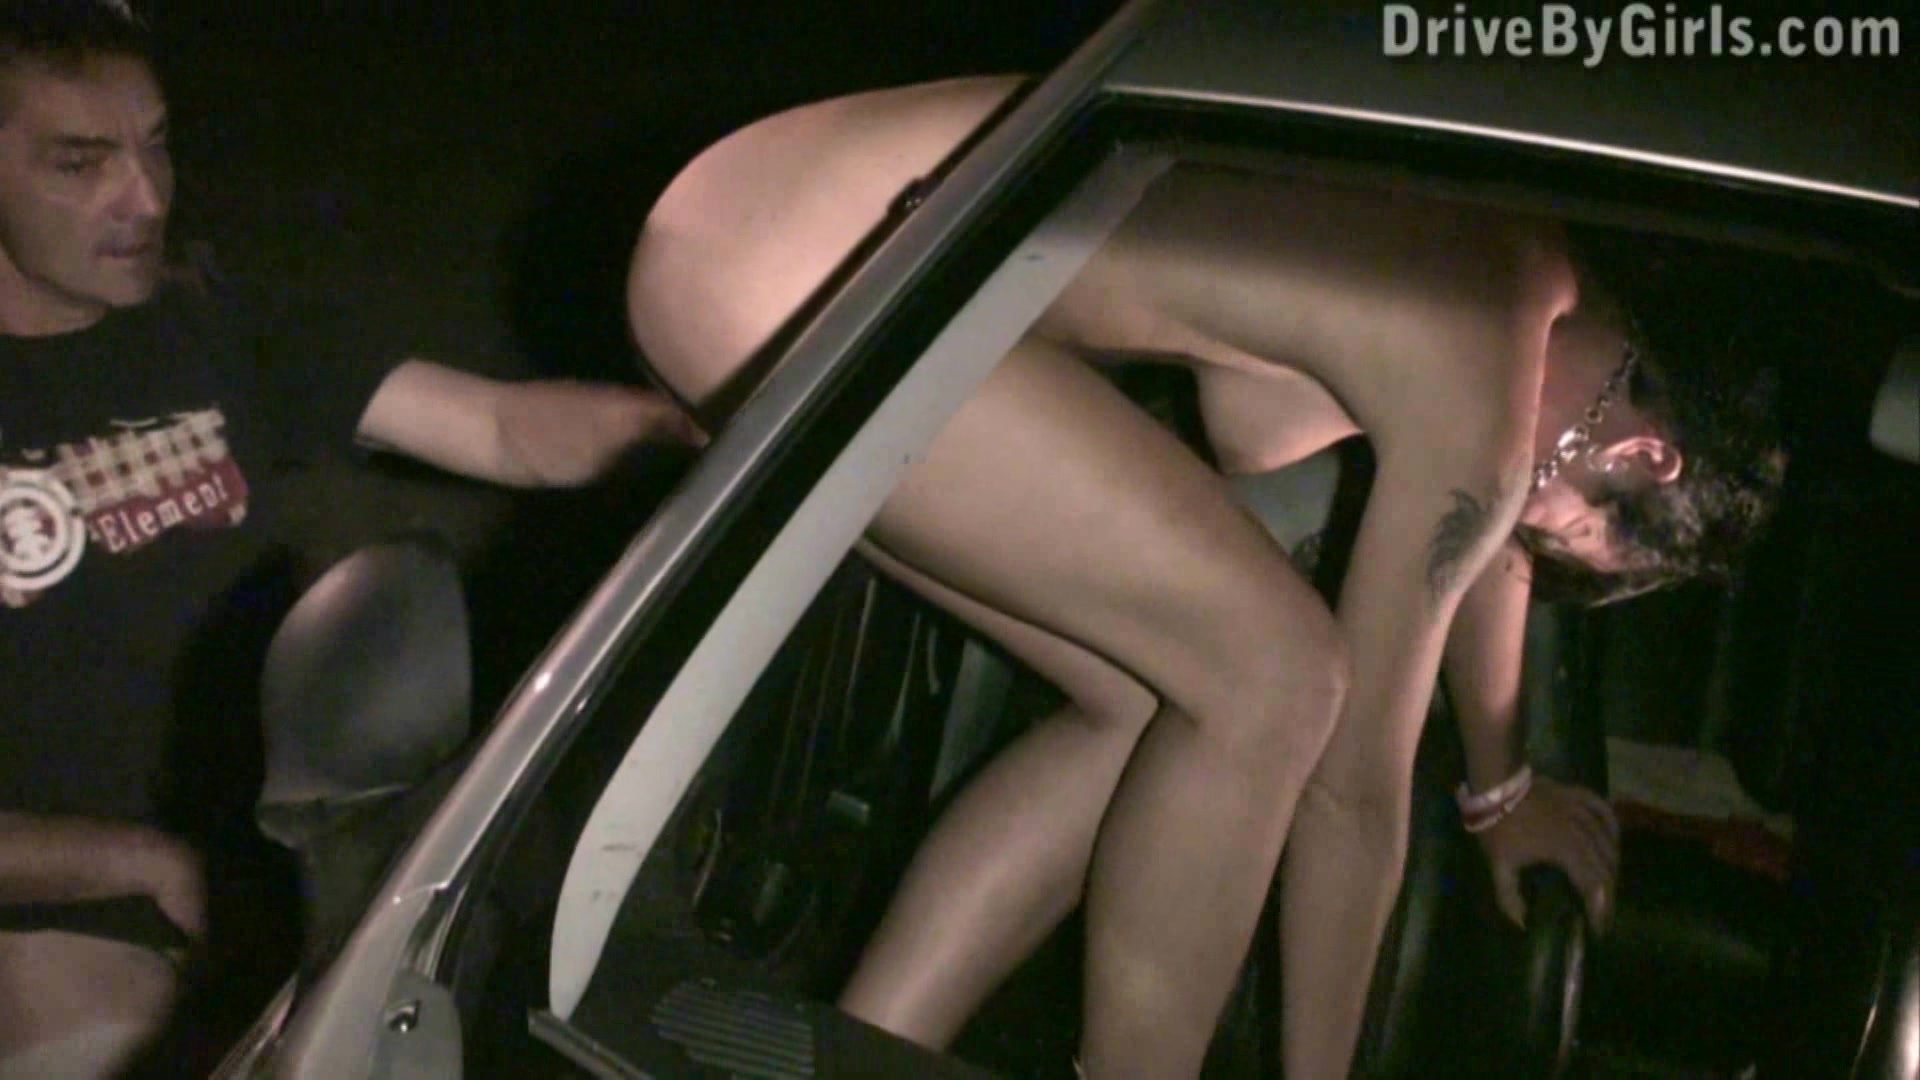 Movies Sex in the car